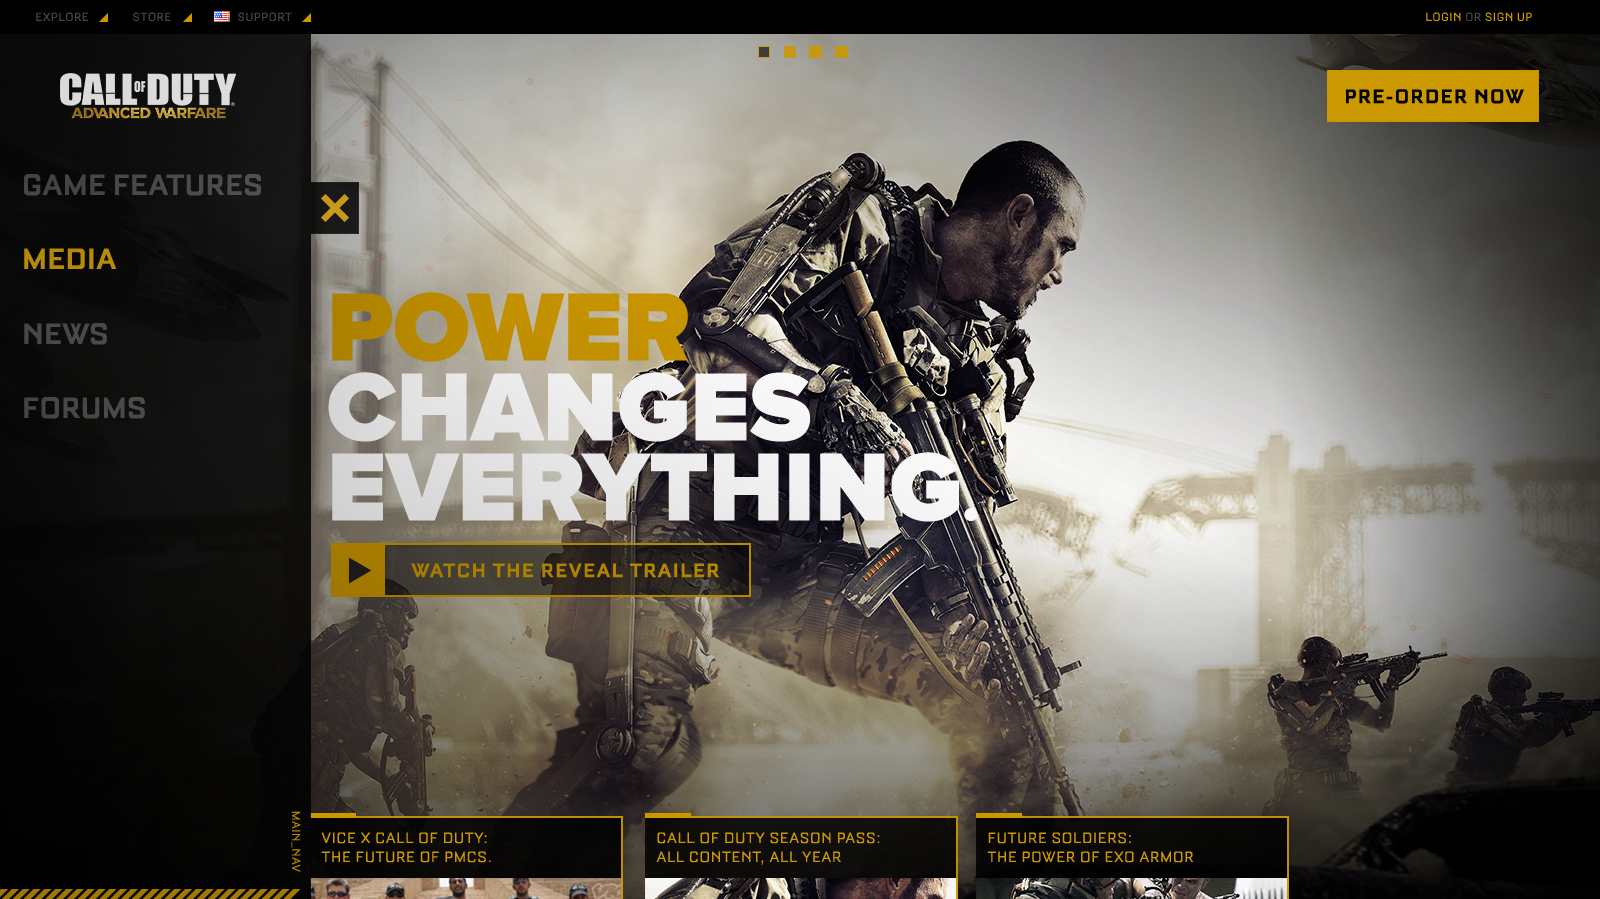 COD_AW_MAINSITE_0001_Home-Page-Nav.png